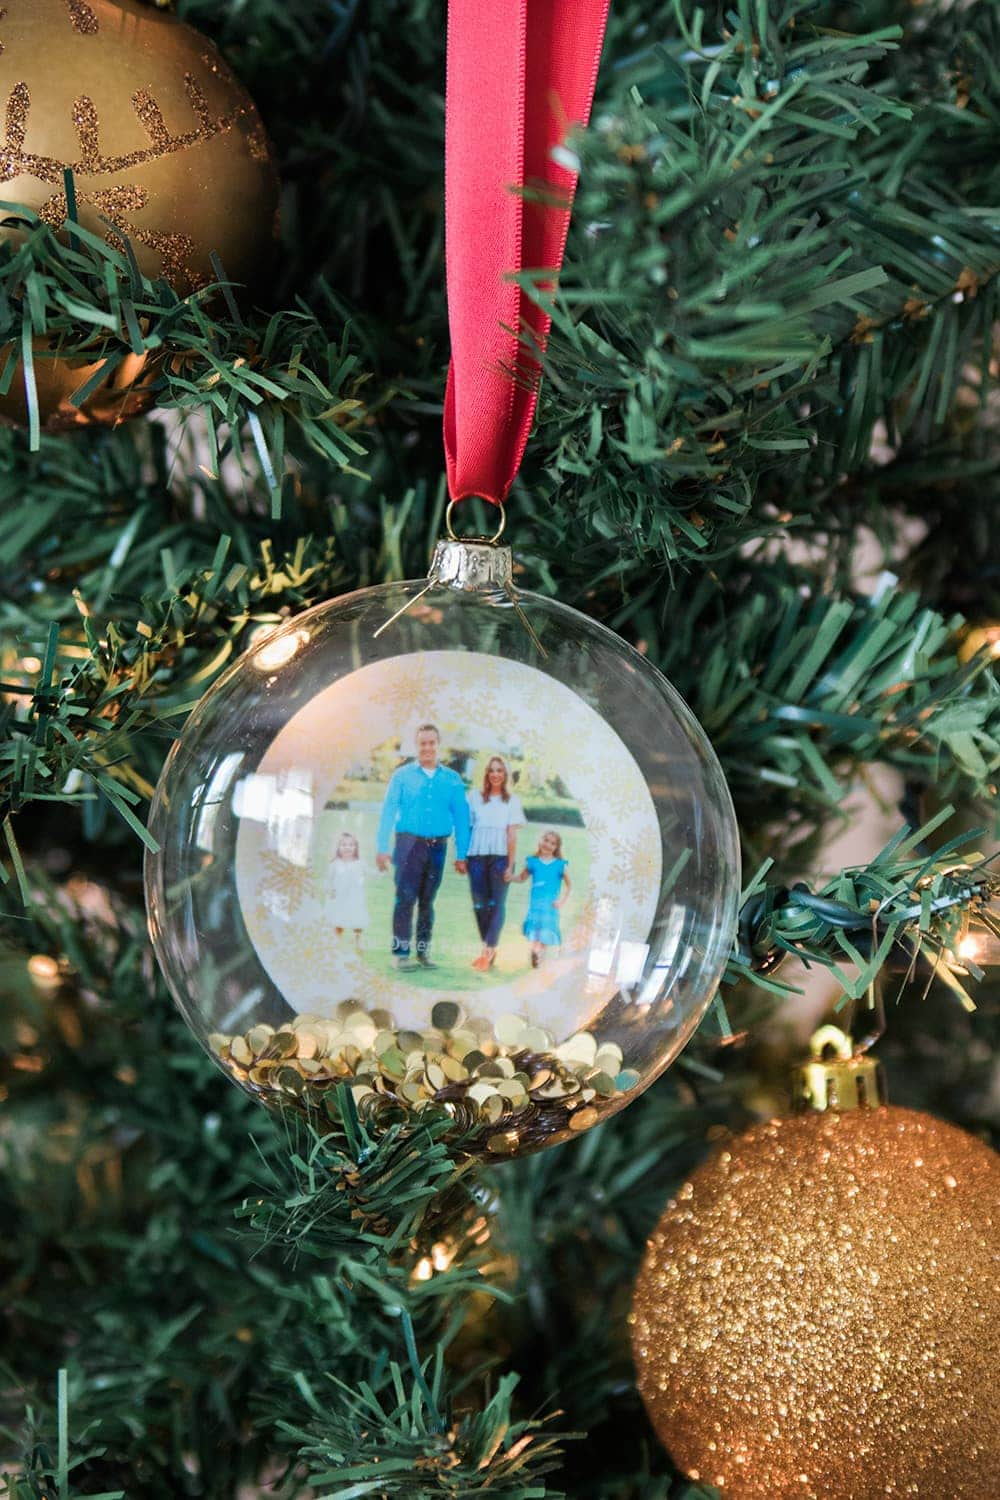 Personalized Ornament from Shutterfly